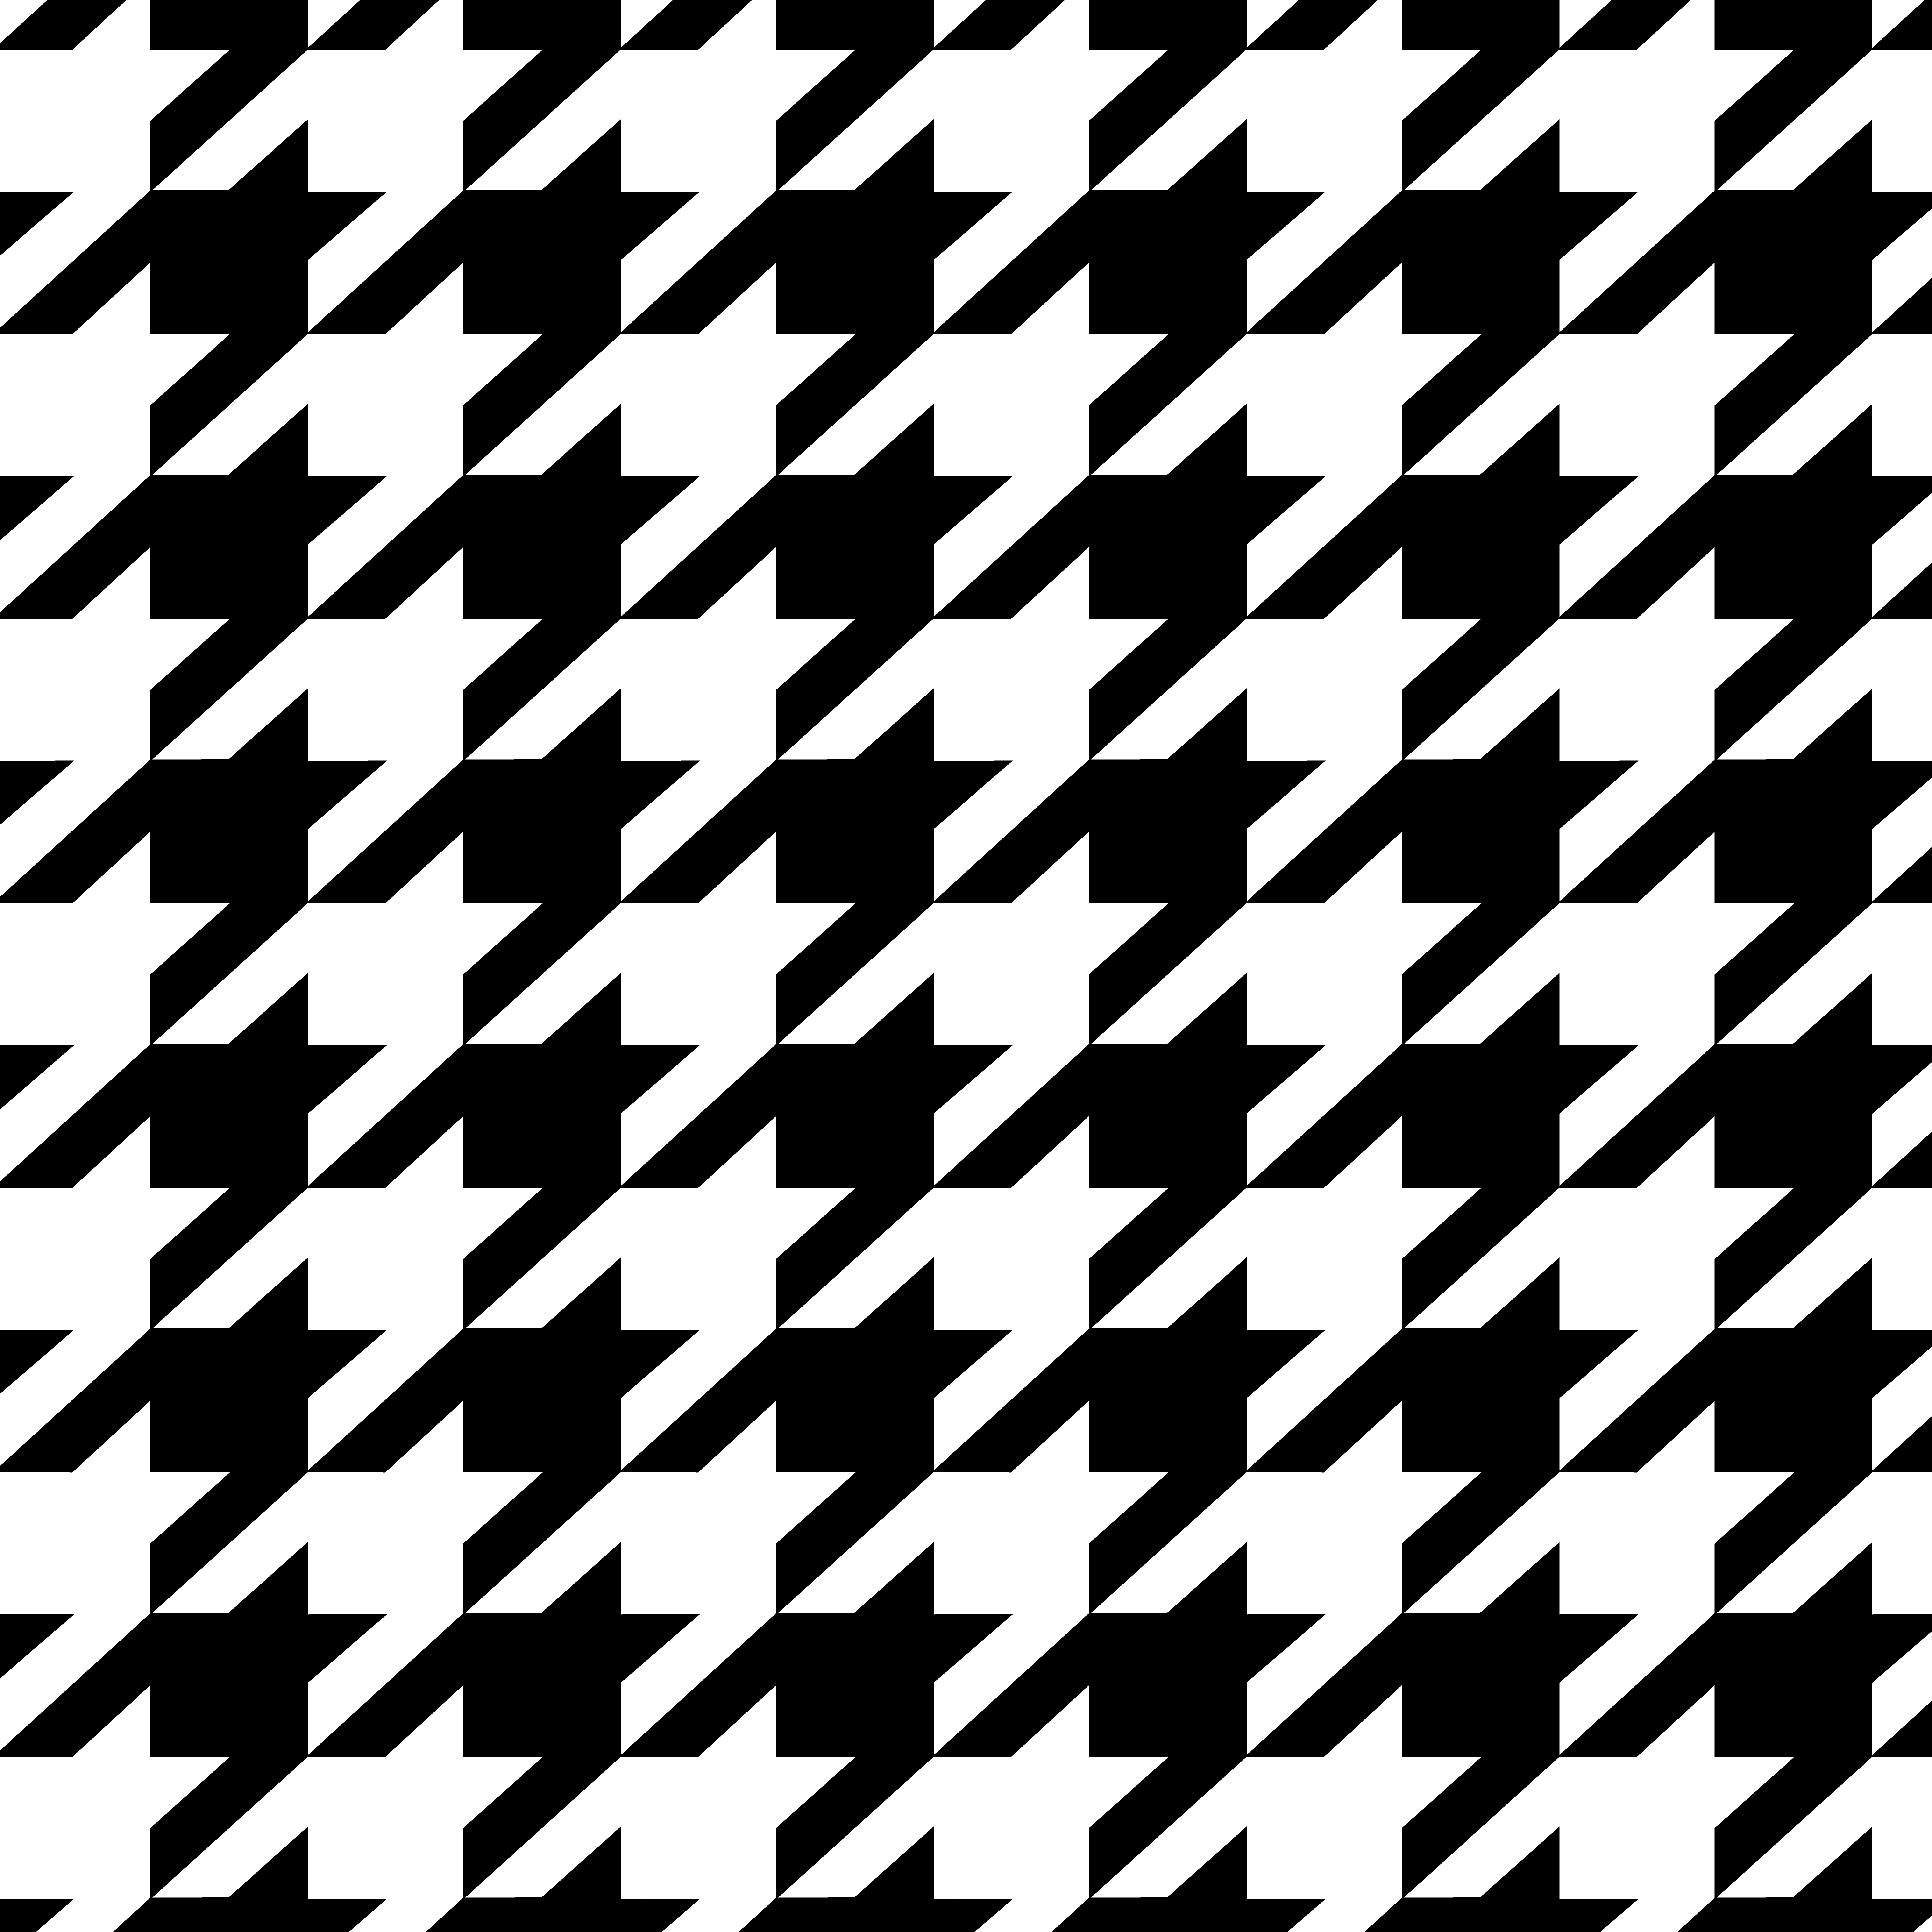 houndstooth - Black And White Design